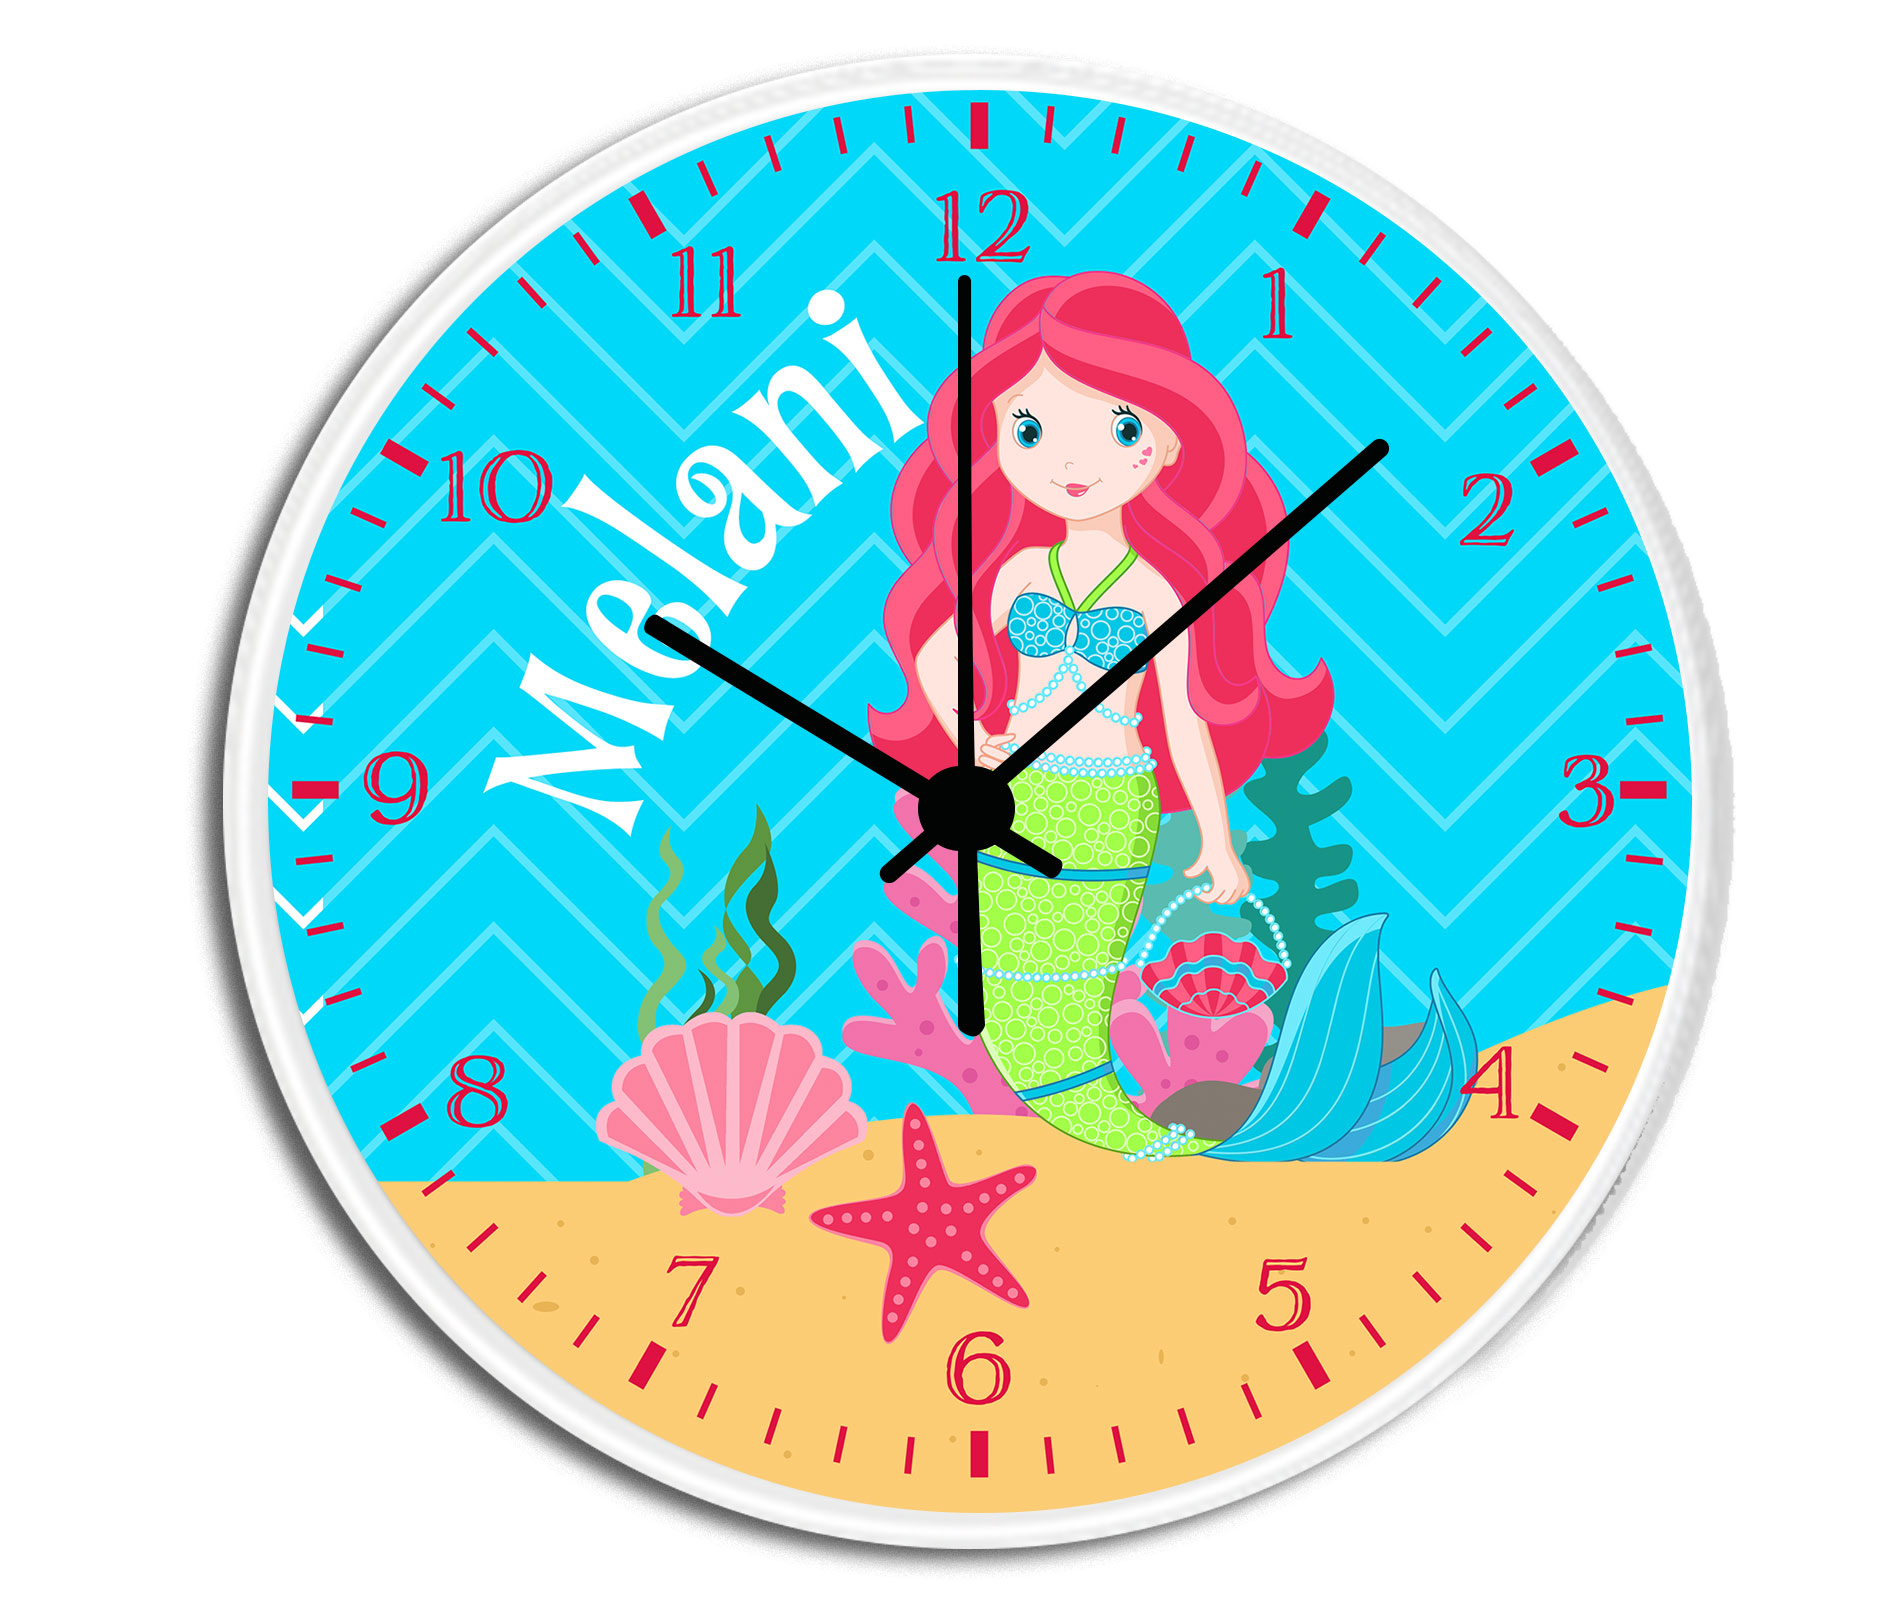 Mermaid girls personalized childrens decorative wall clock wall mermaid clock amipublicfo Images